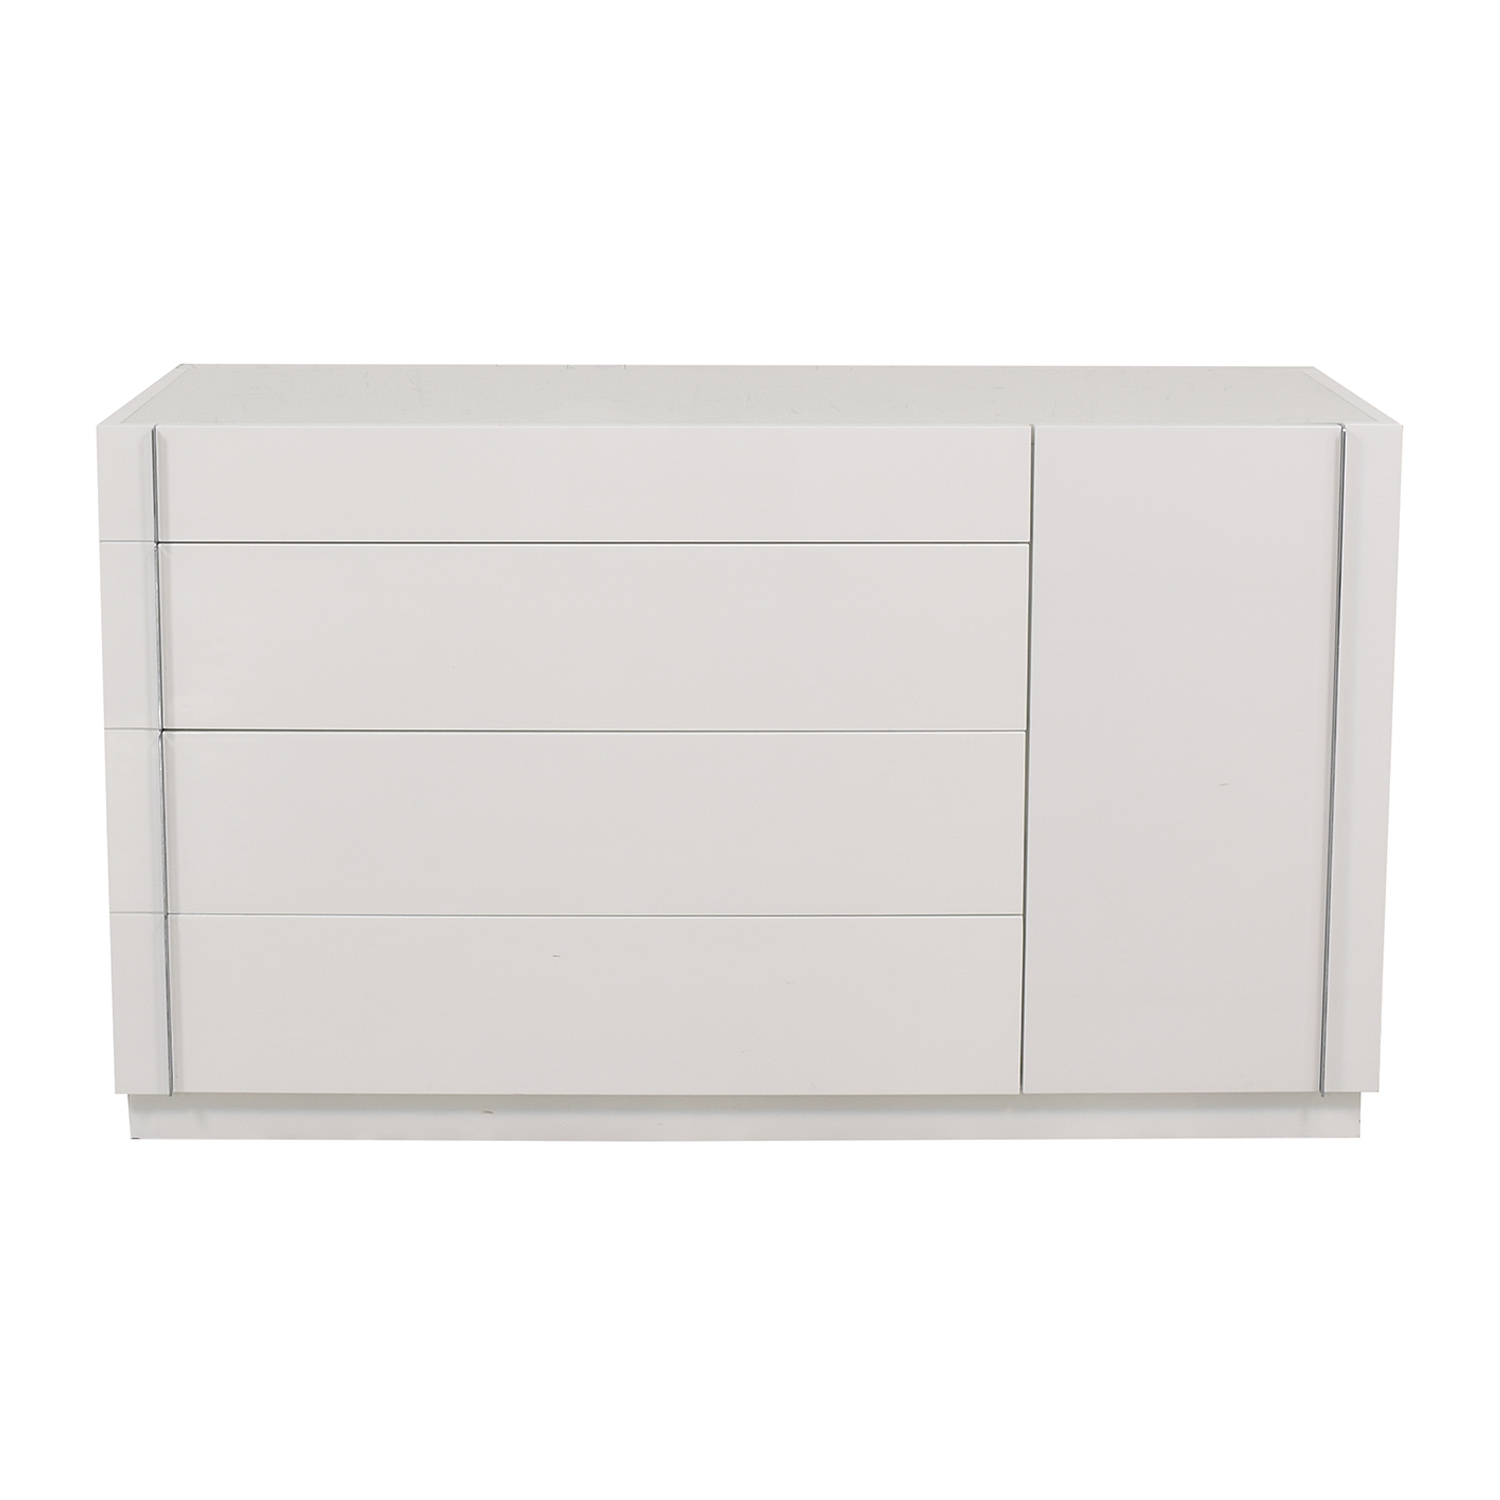 buy J&M Furniture Amora Premium Wood Veneer Dresser J&M Furniture Storage